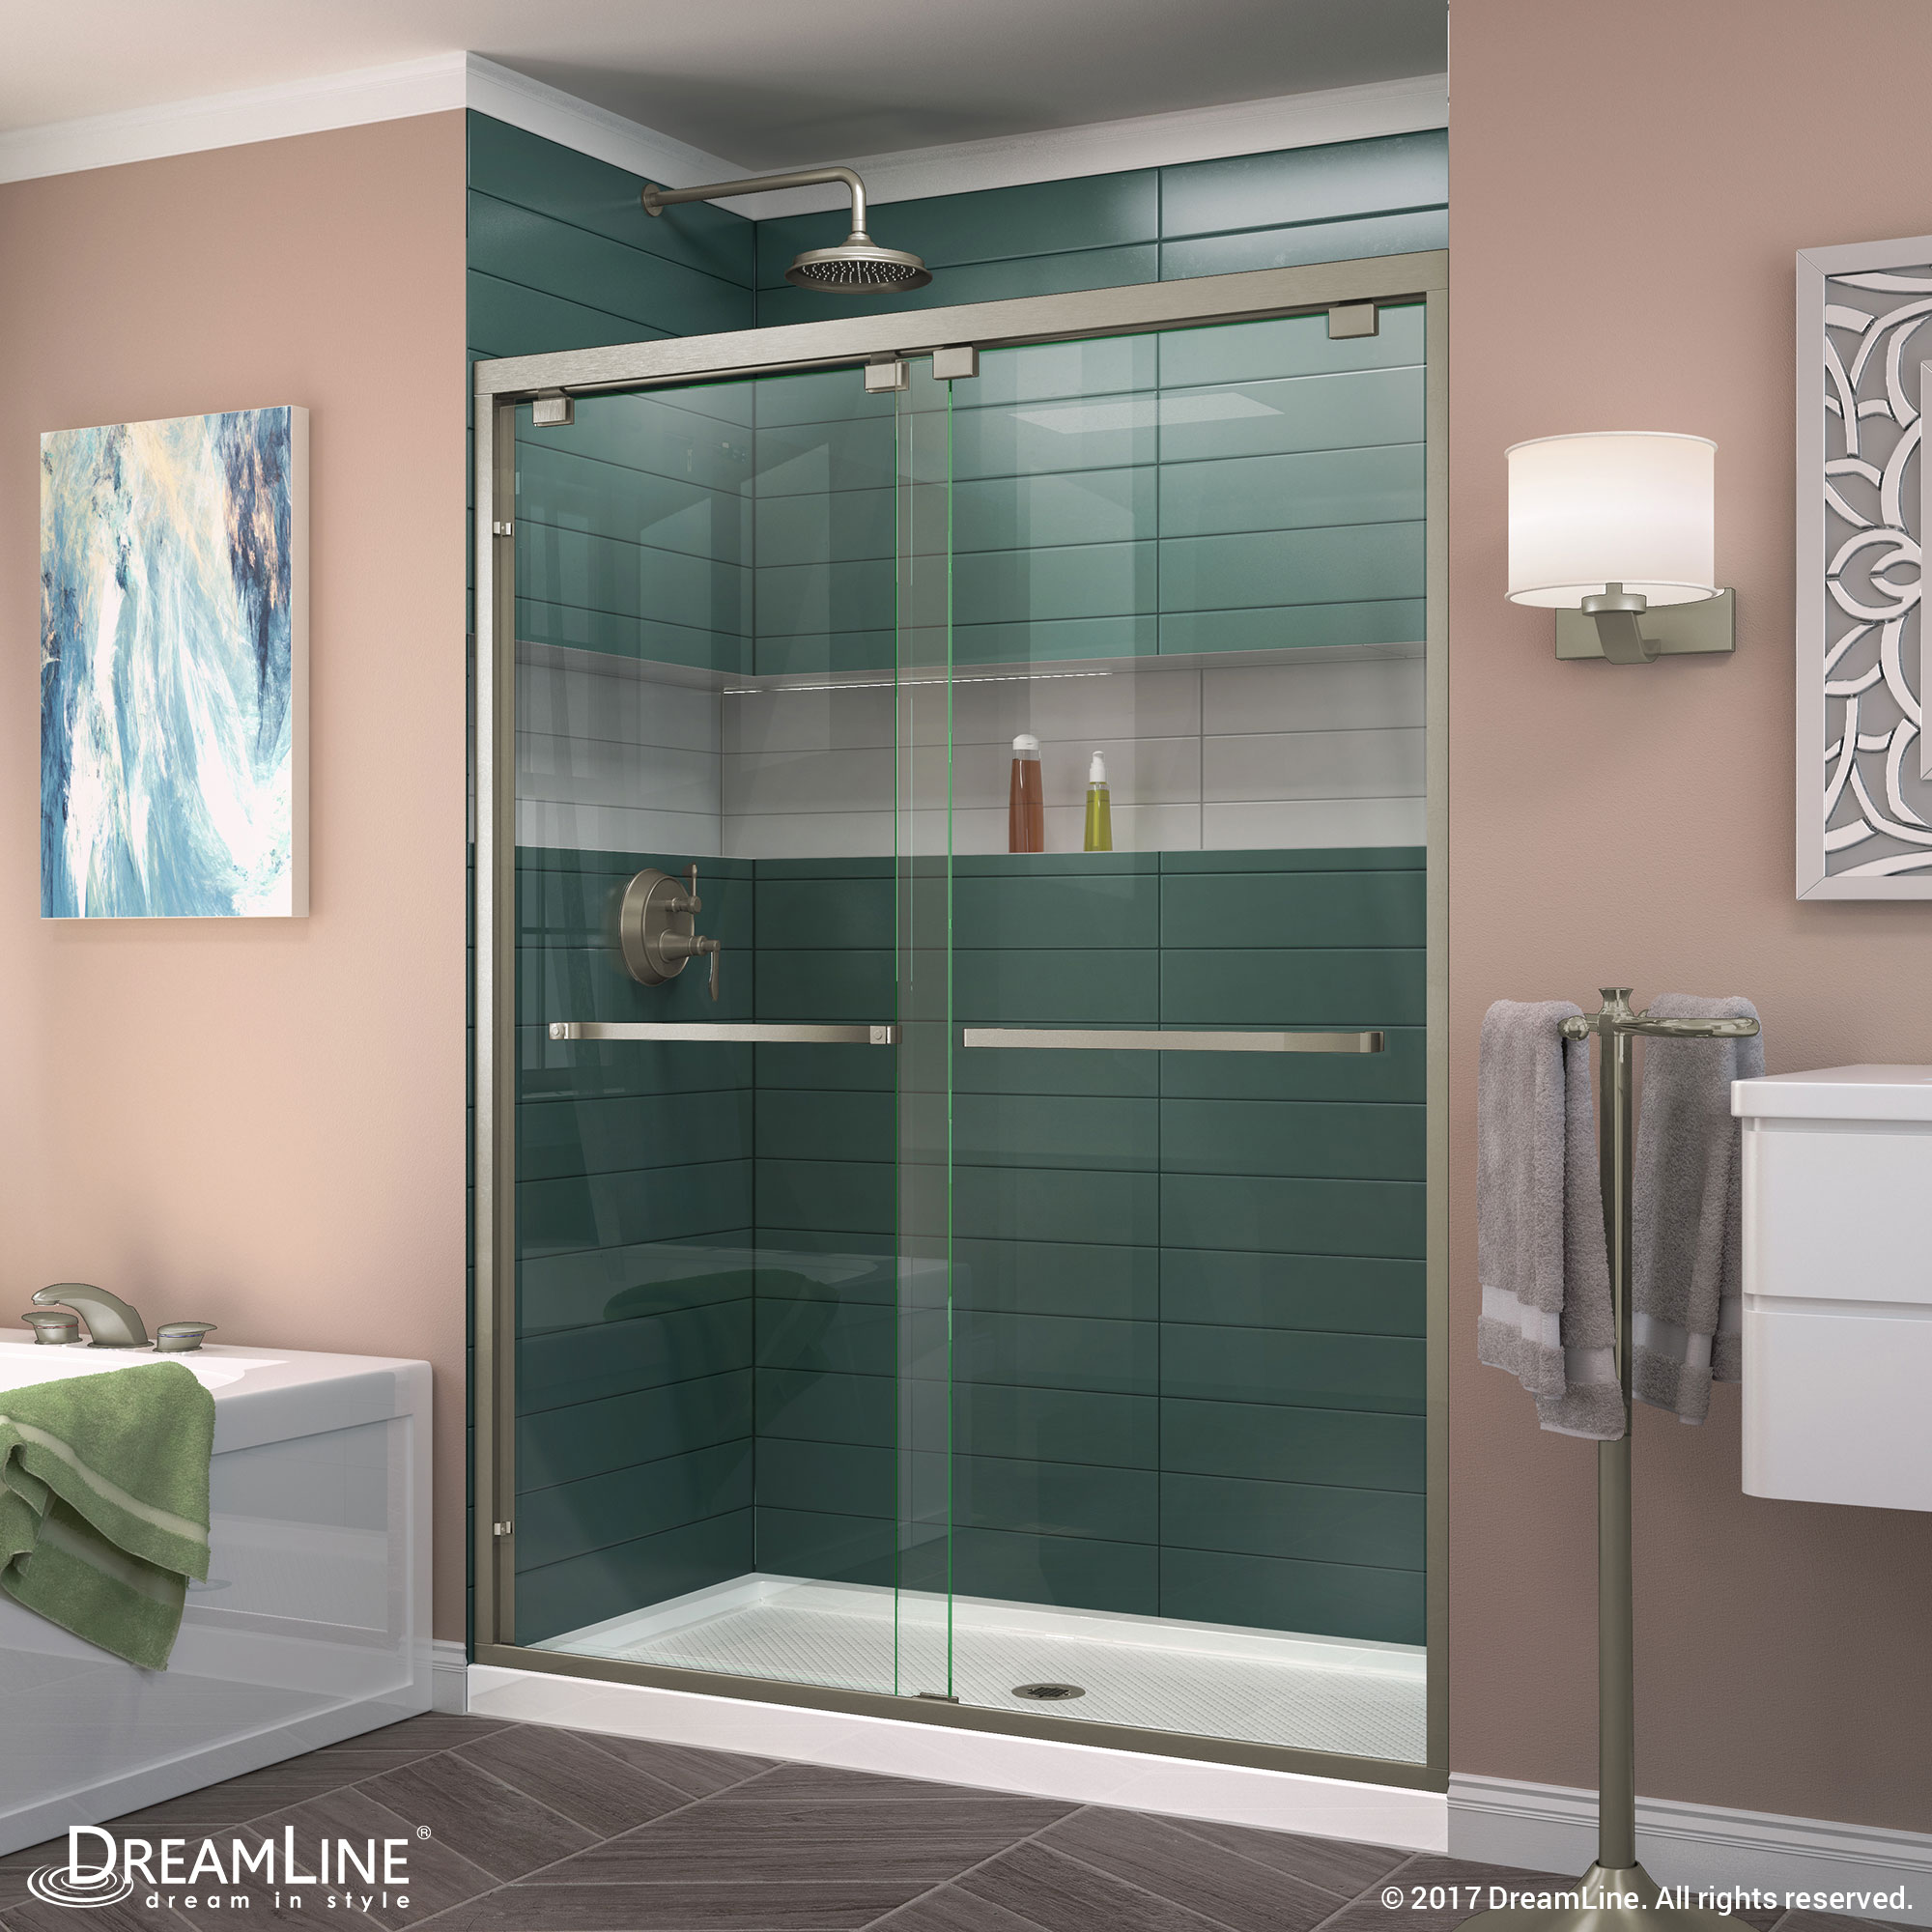 DreamLine Encore 34 in. D x 60 in. W x 78 3/4 in. H Bypass Shower Door in Chrome and Center Drain White Base Kit